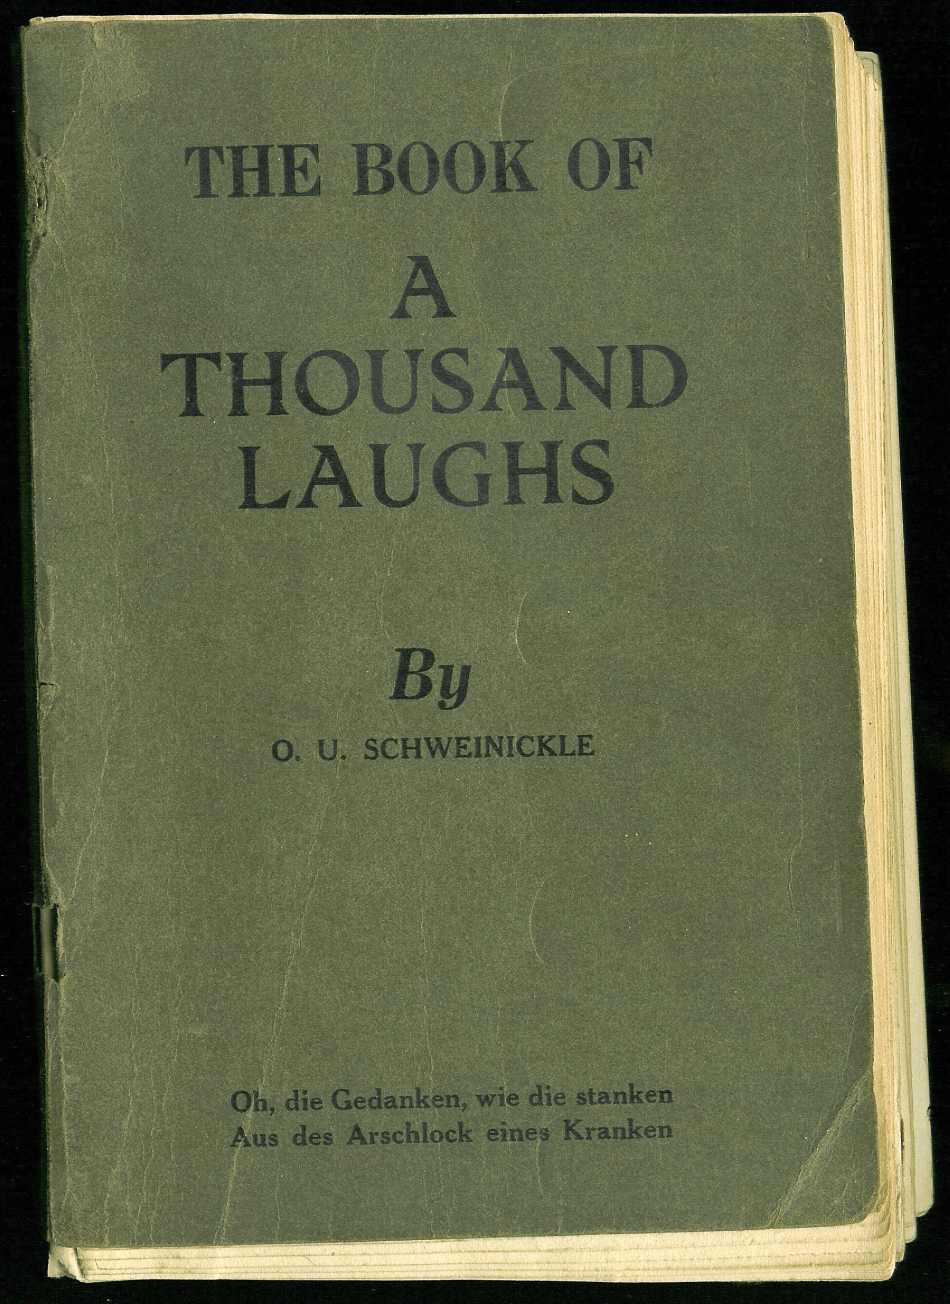 the book of a thousand laughs by o. u. schweinickle - Weie Mbel Weie Wand